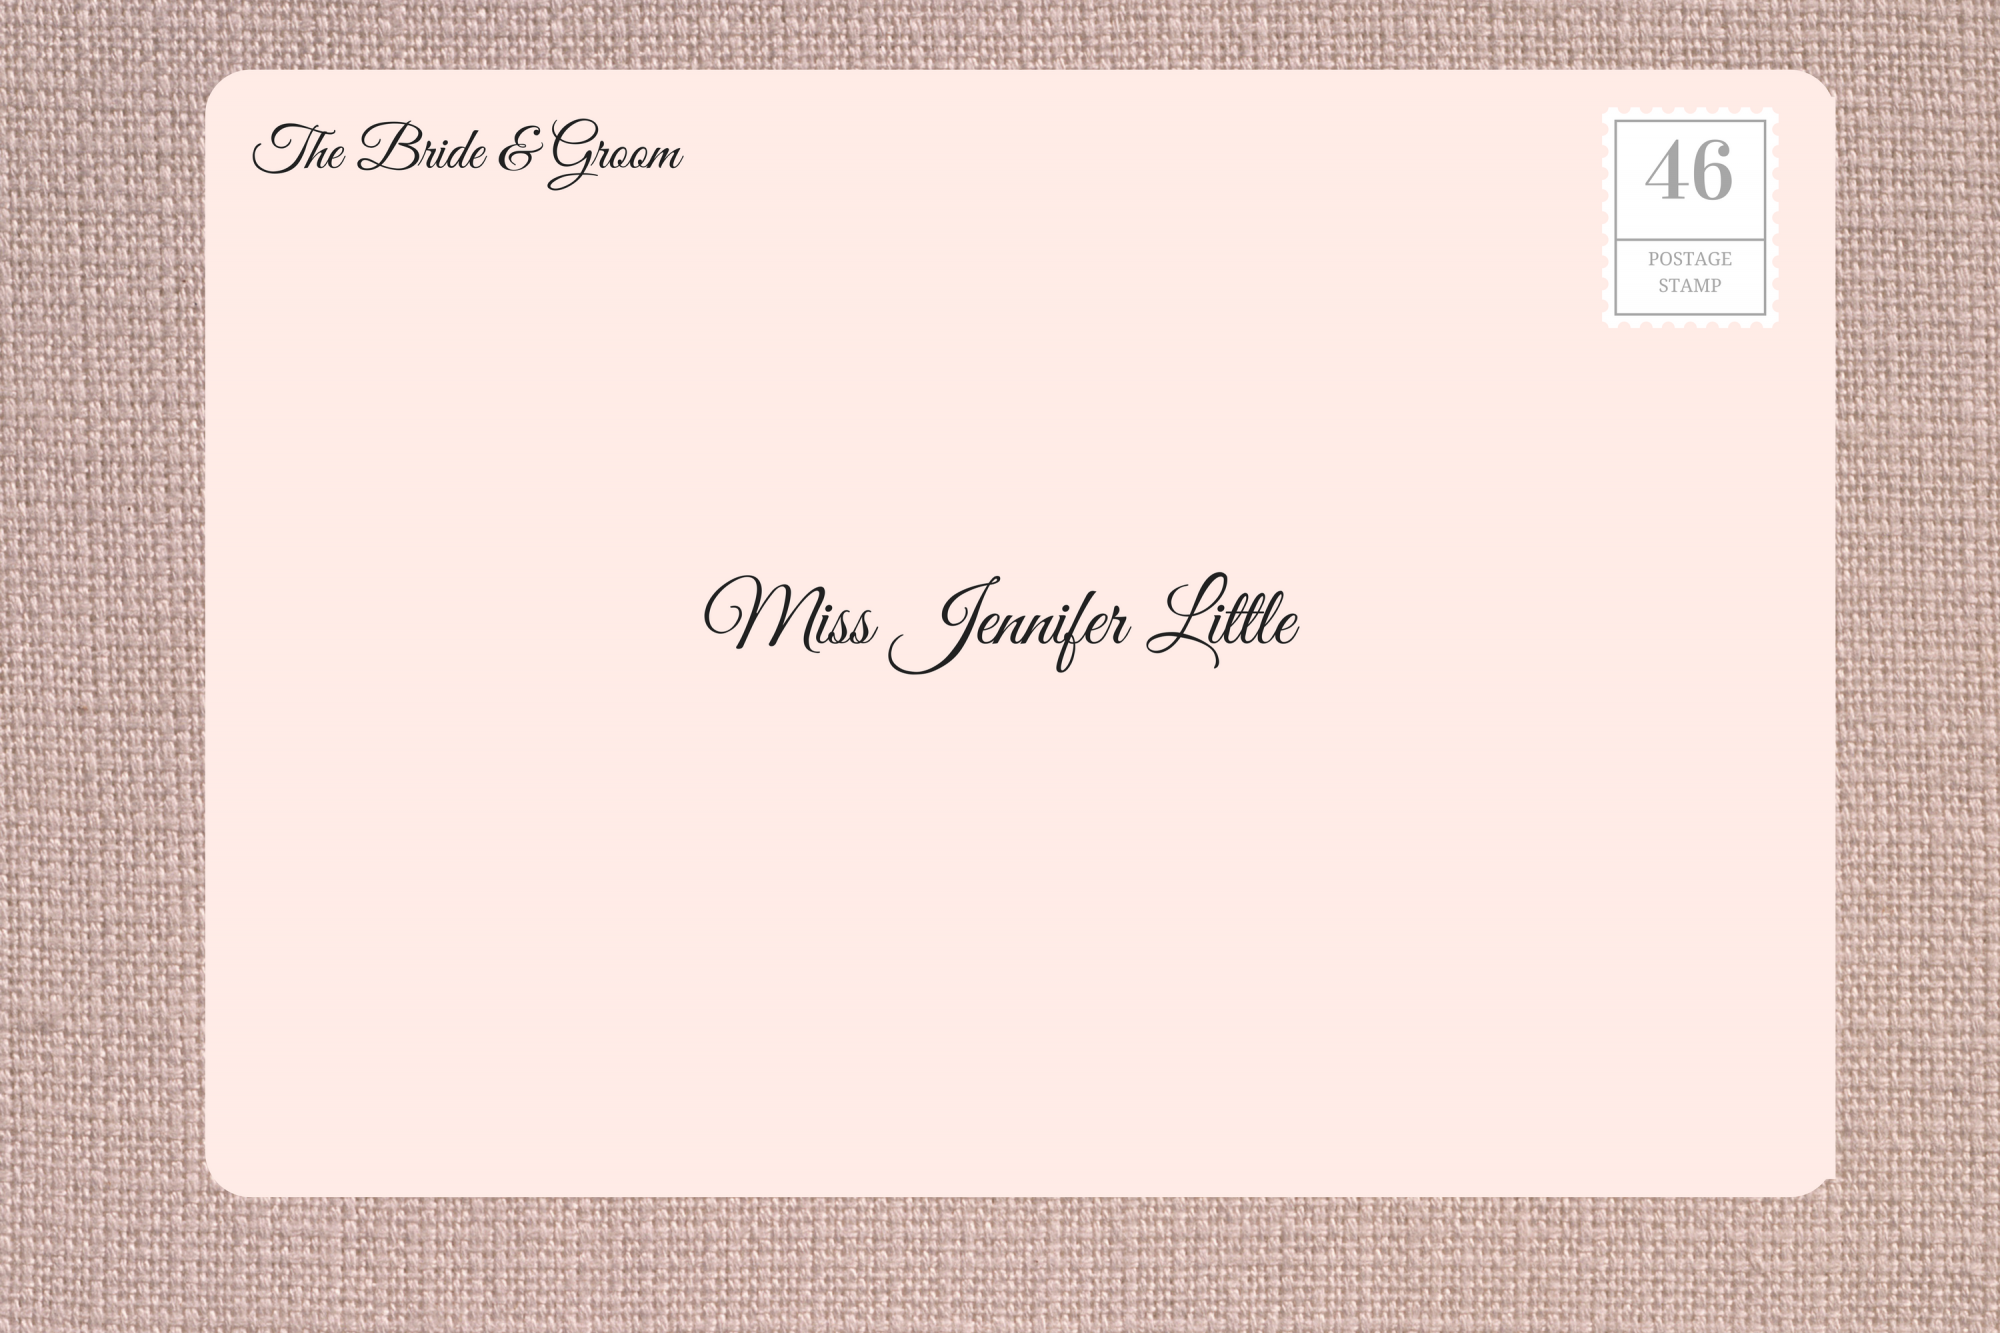 Addressing Wedding Invitations to Single Woman